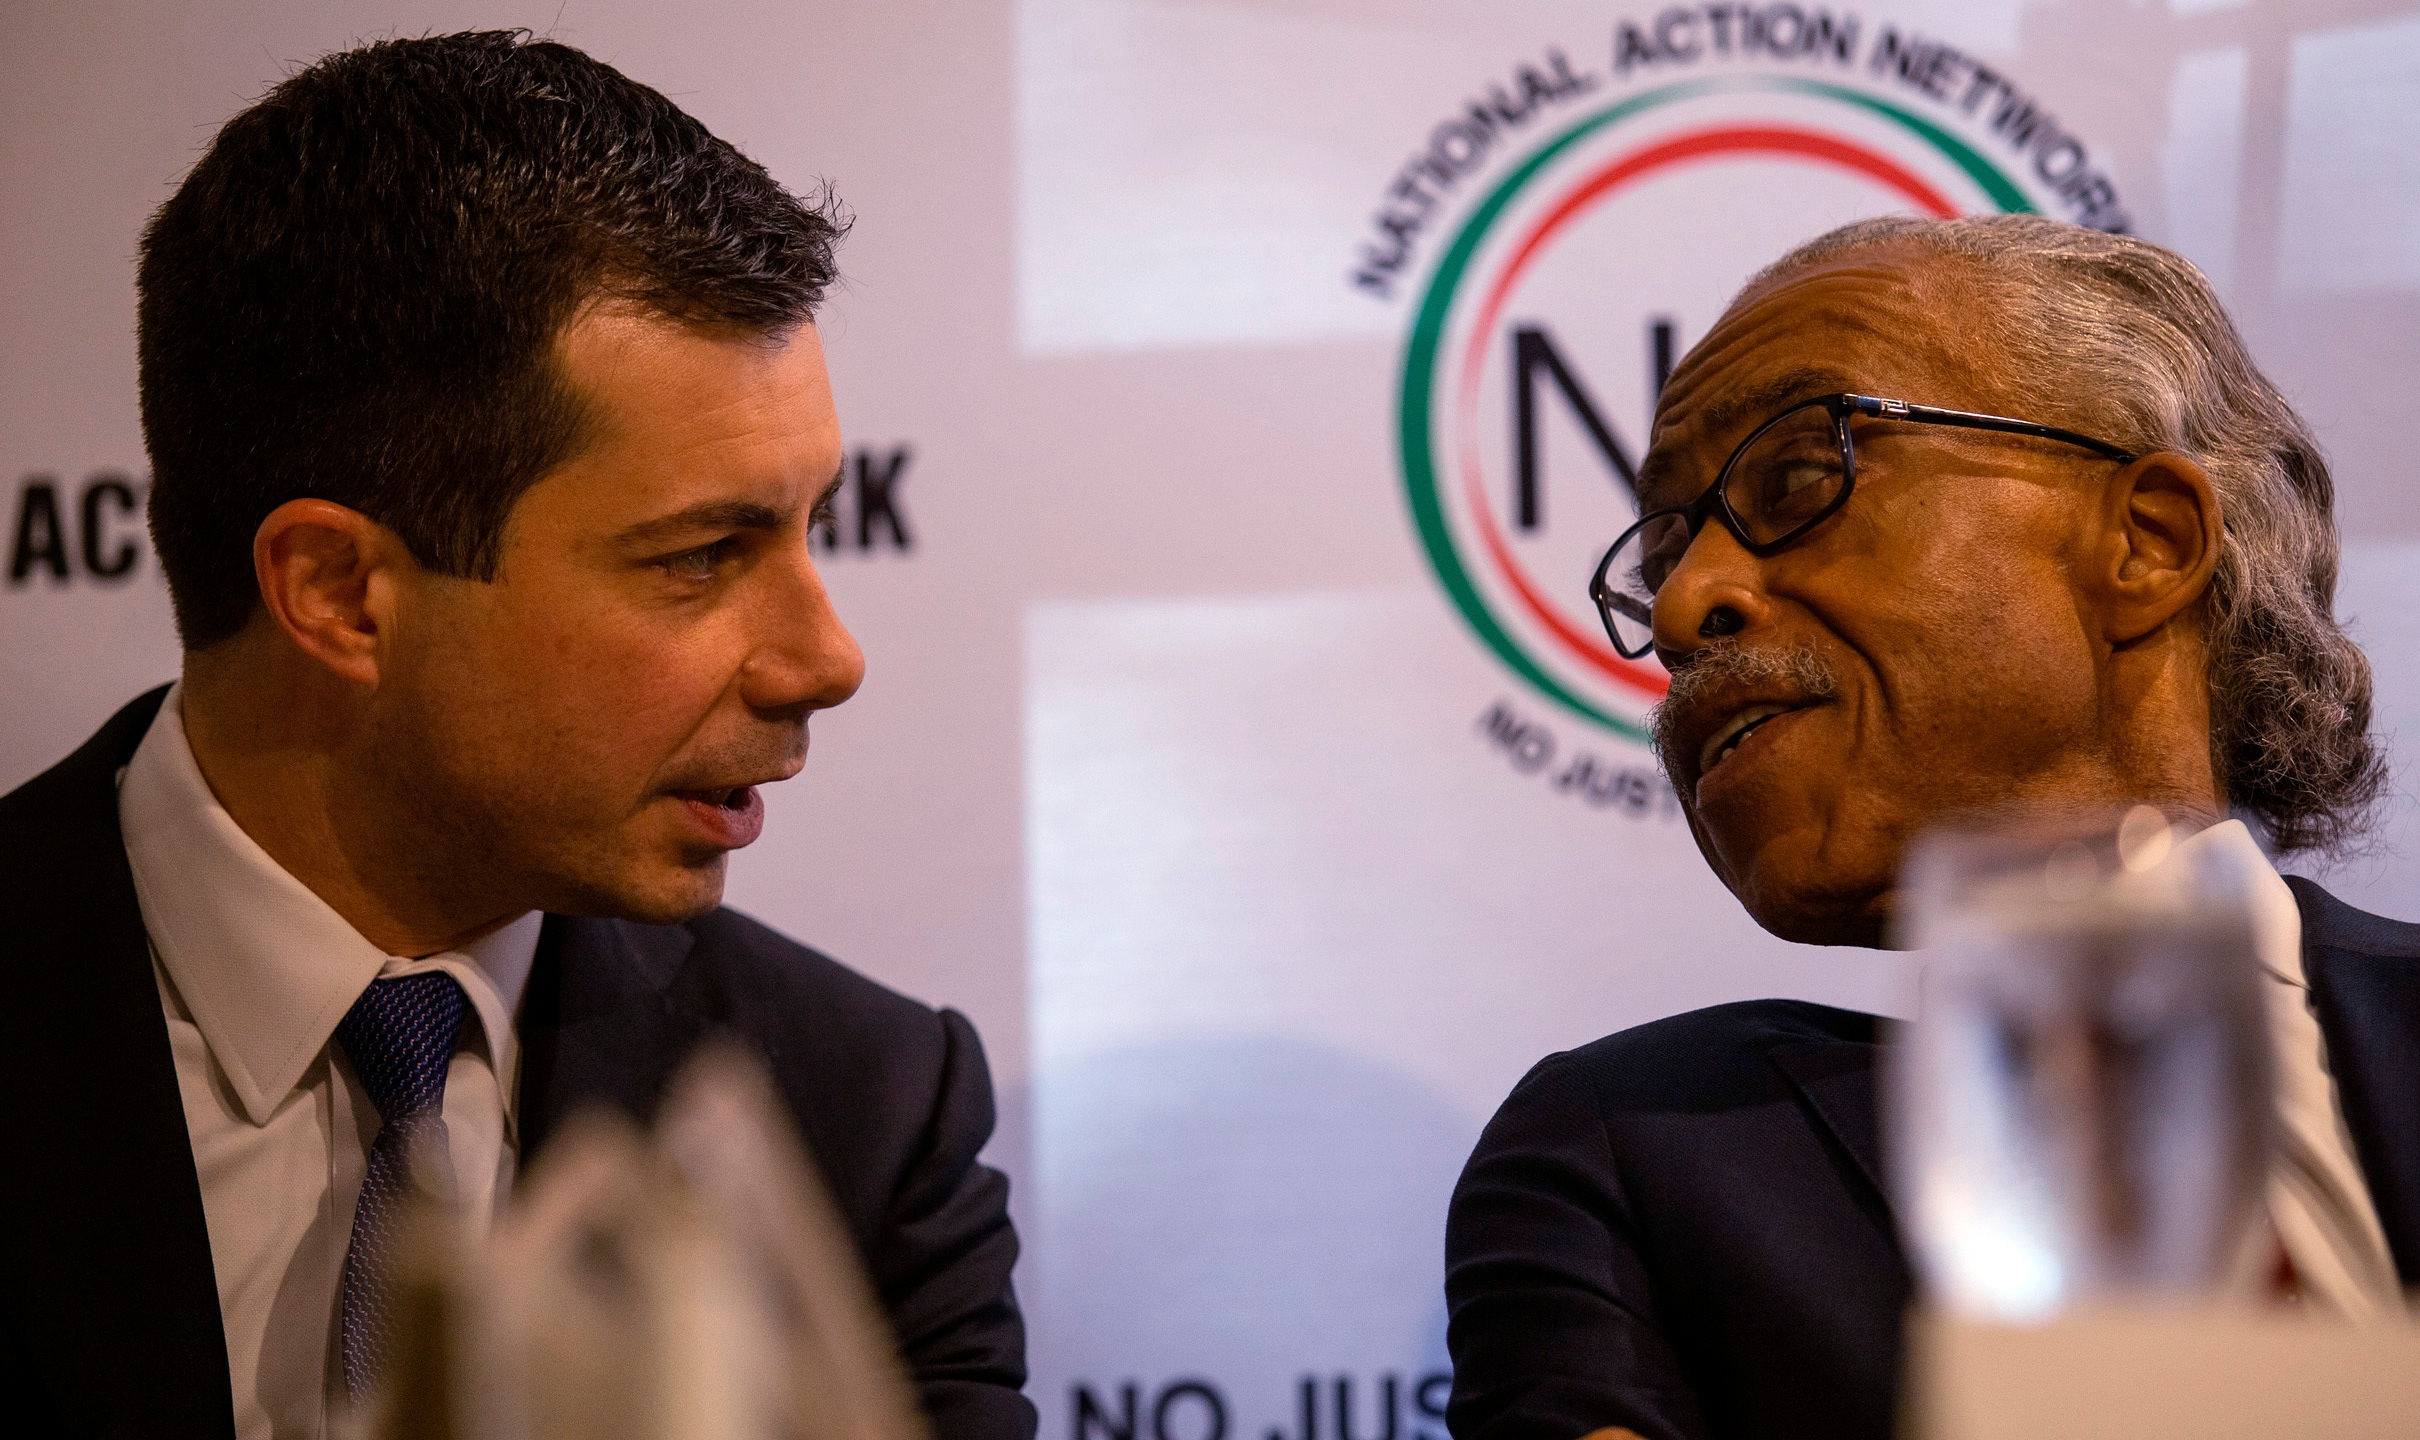 Pete Buttigieg, Al Sharpton, Buttigieg speaks at Sharpton event in Atlanta